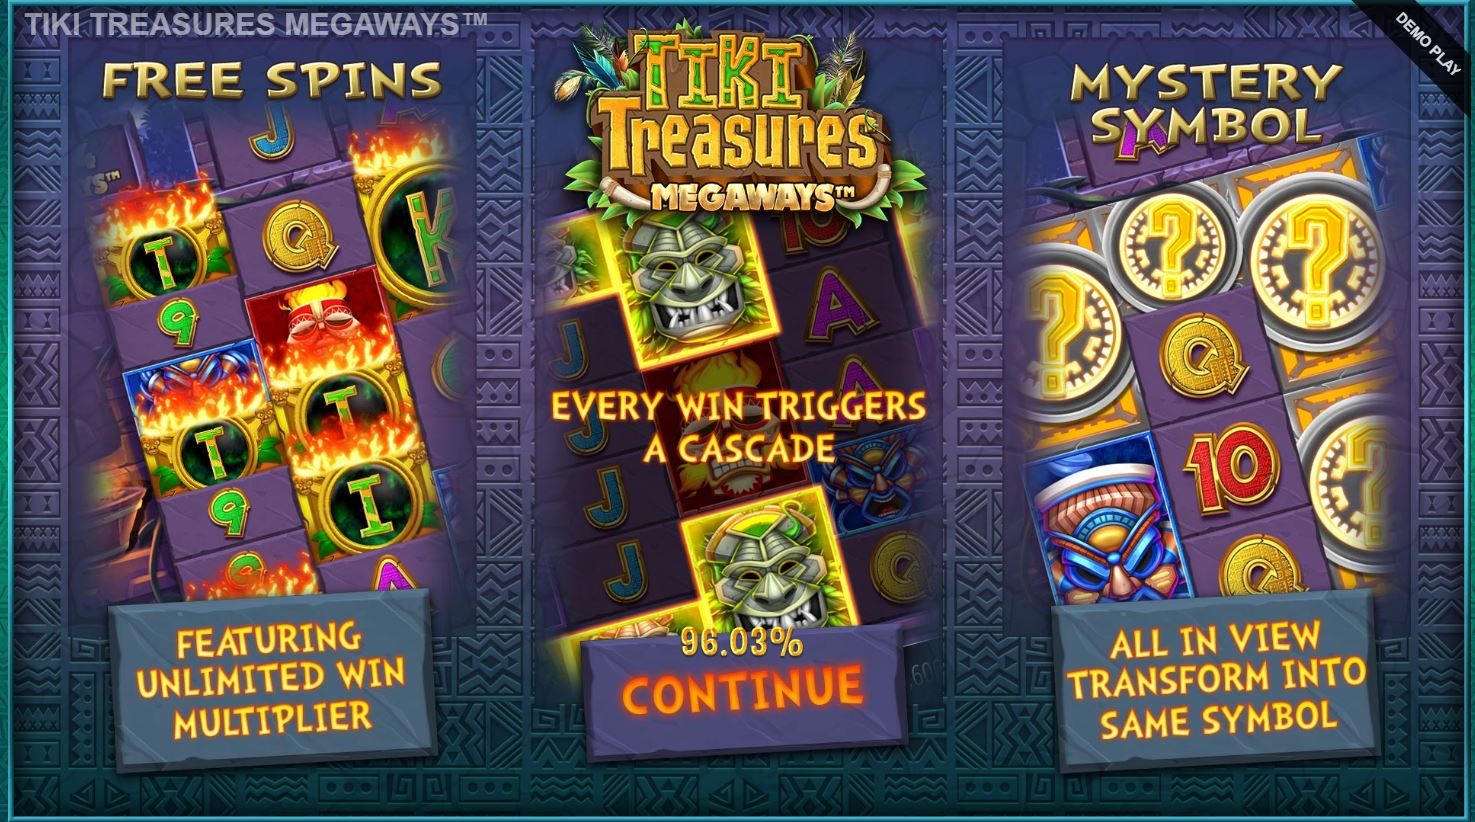 Features in Tiki Treasures Megaways